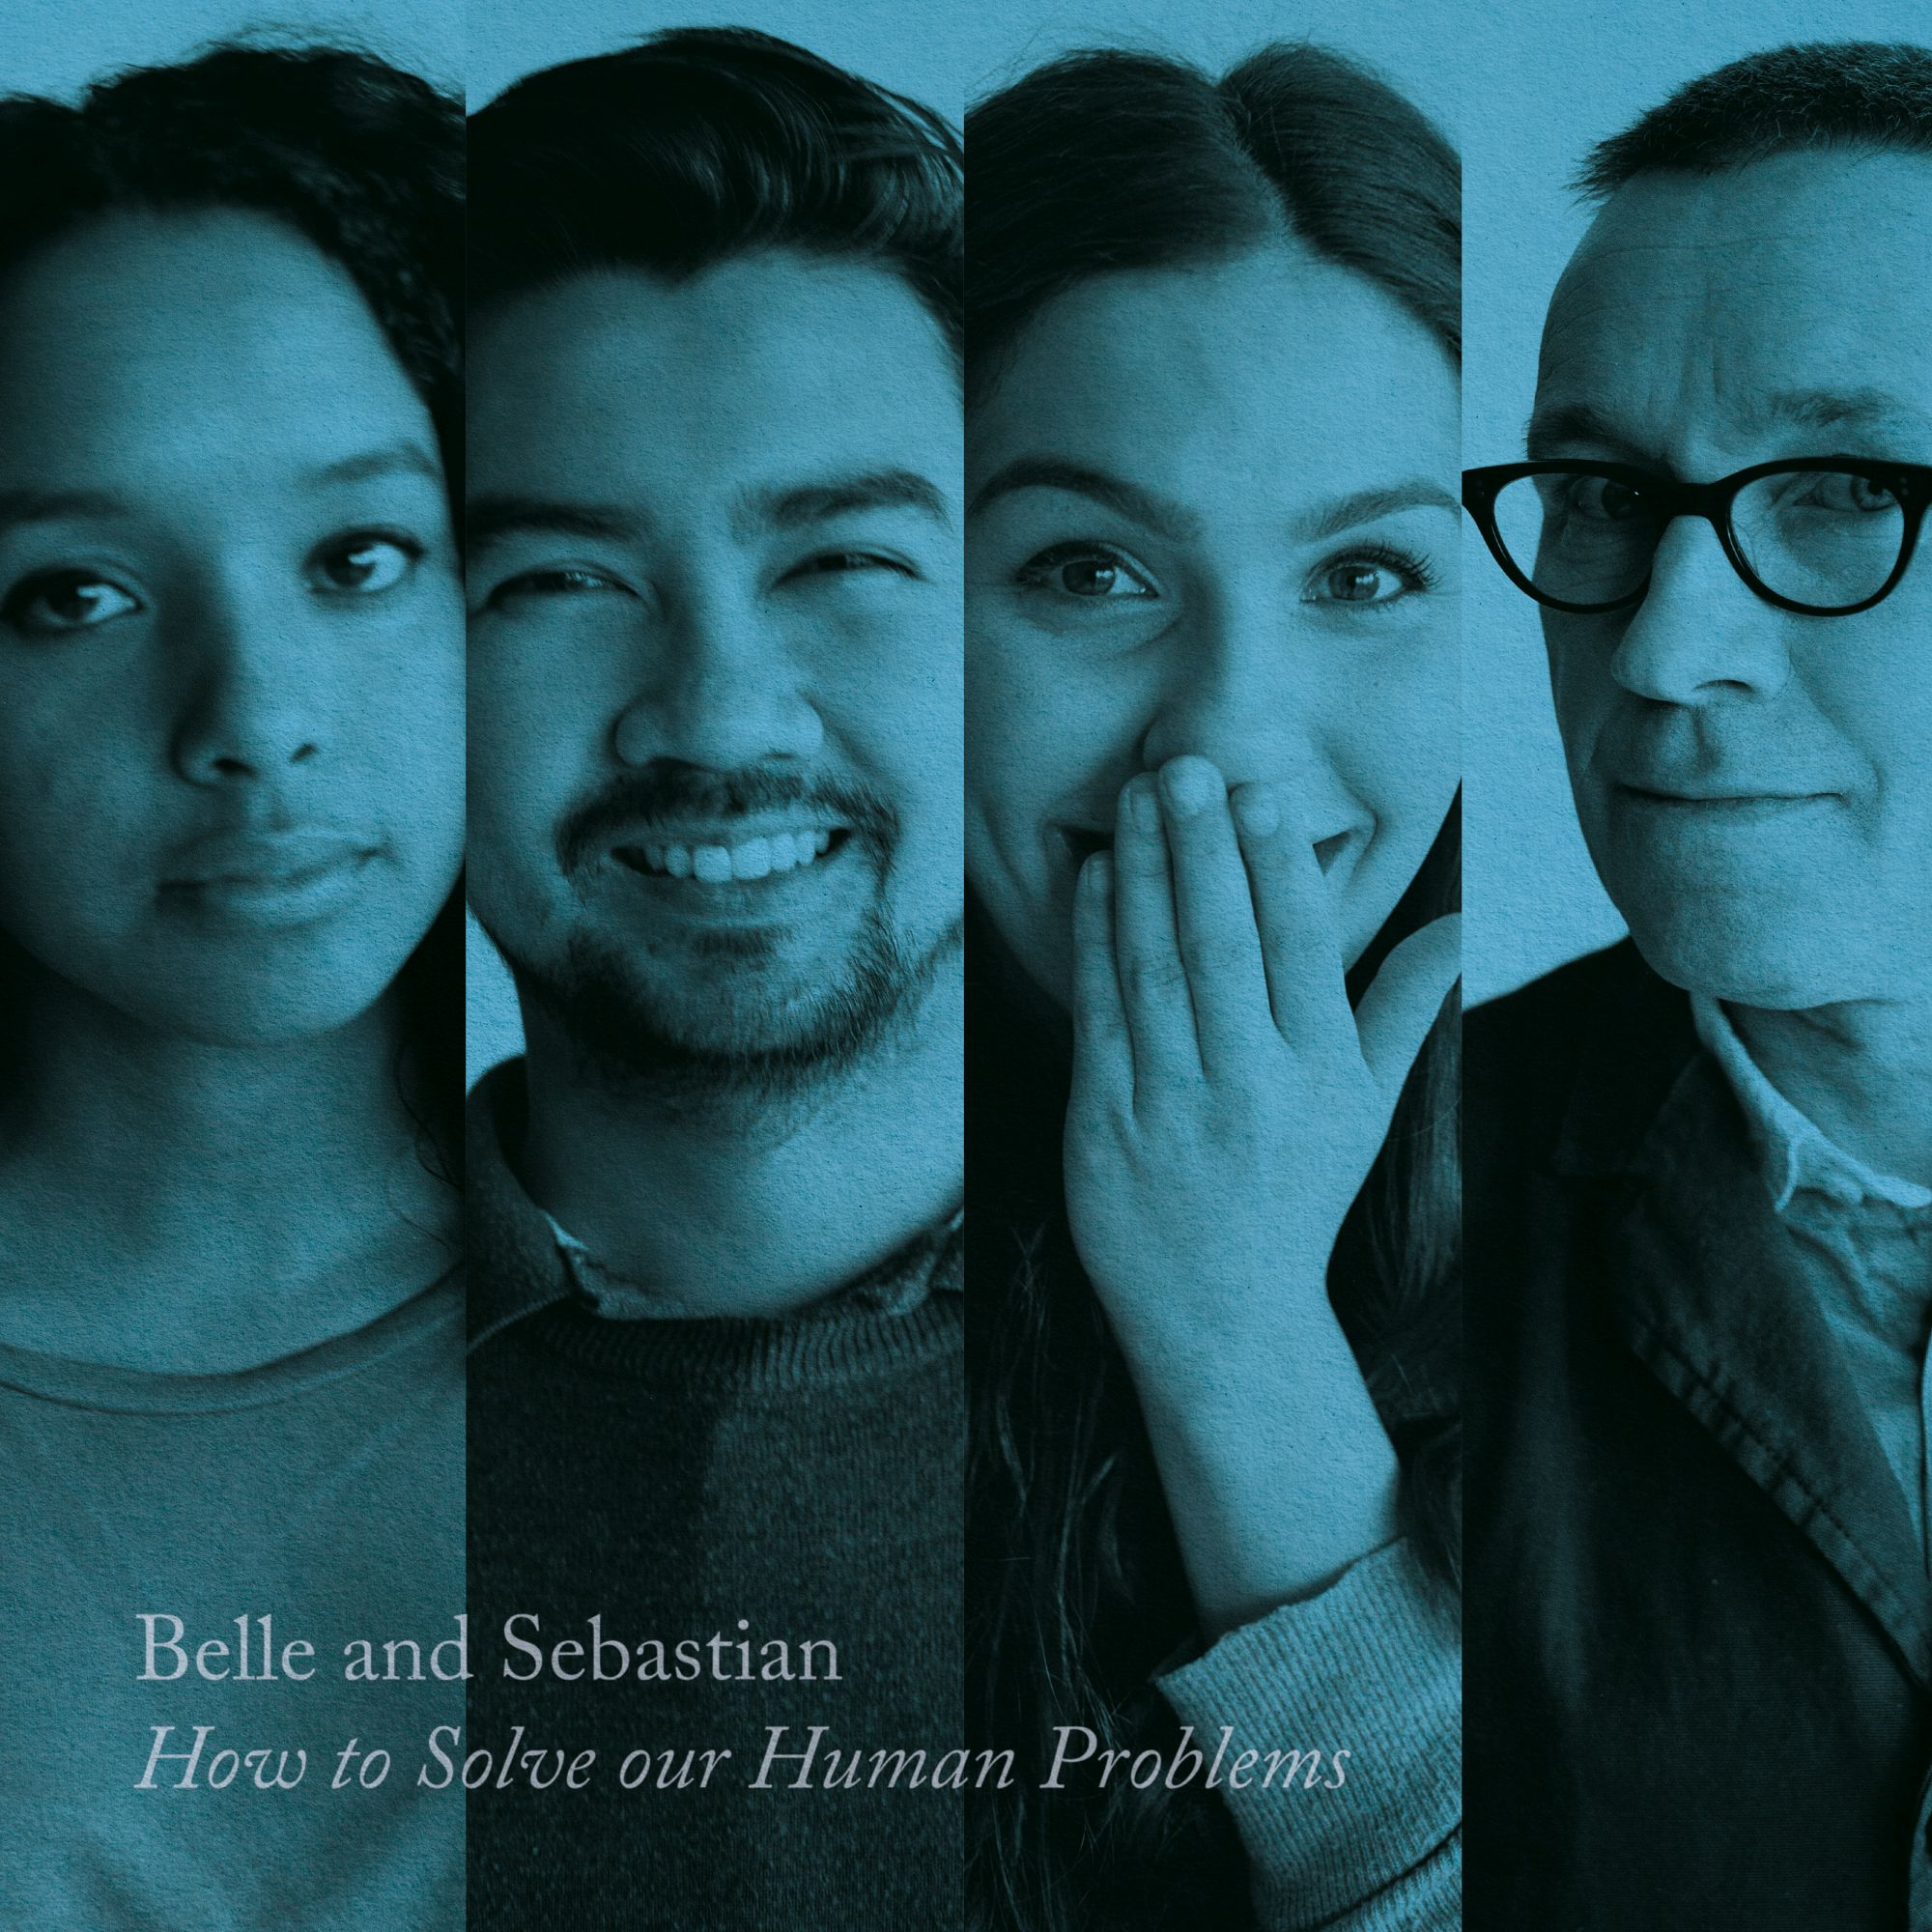 Belle And Sebastian - How To Solve Our Human Problems (Part 3)